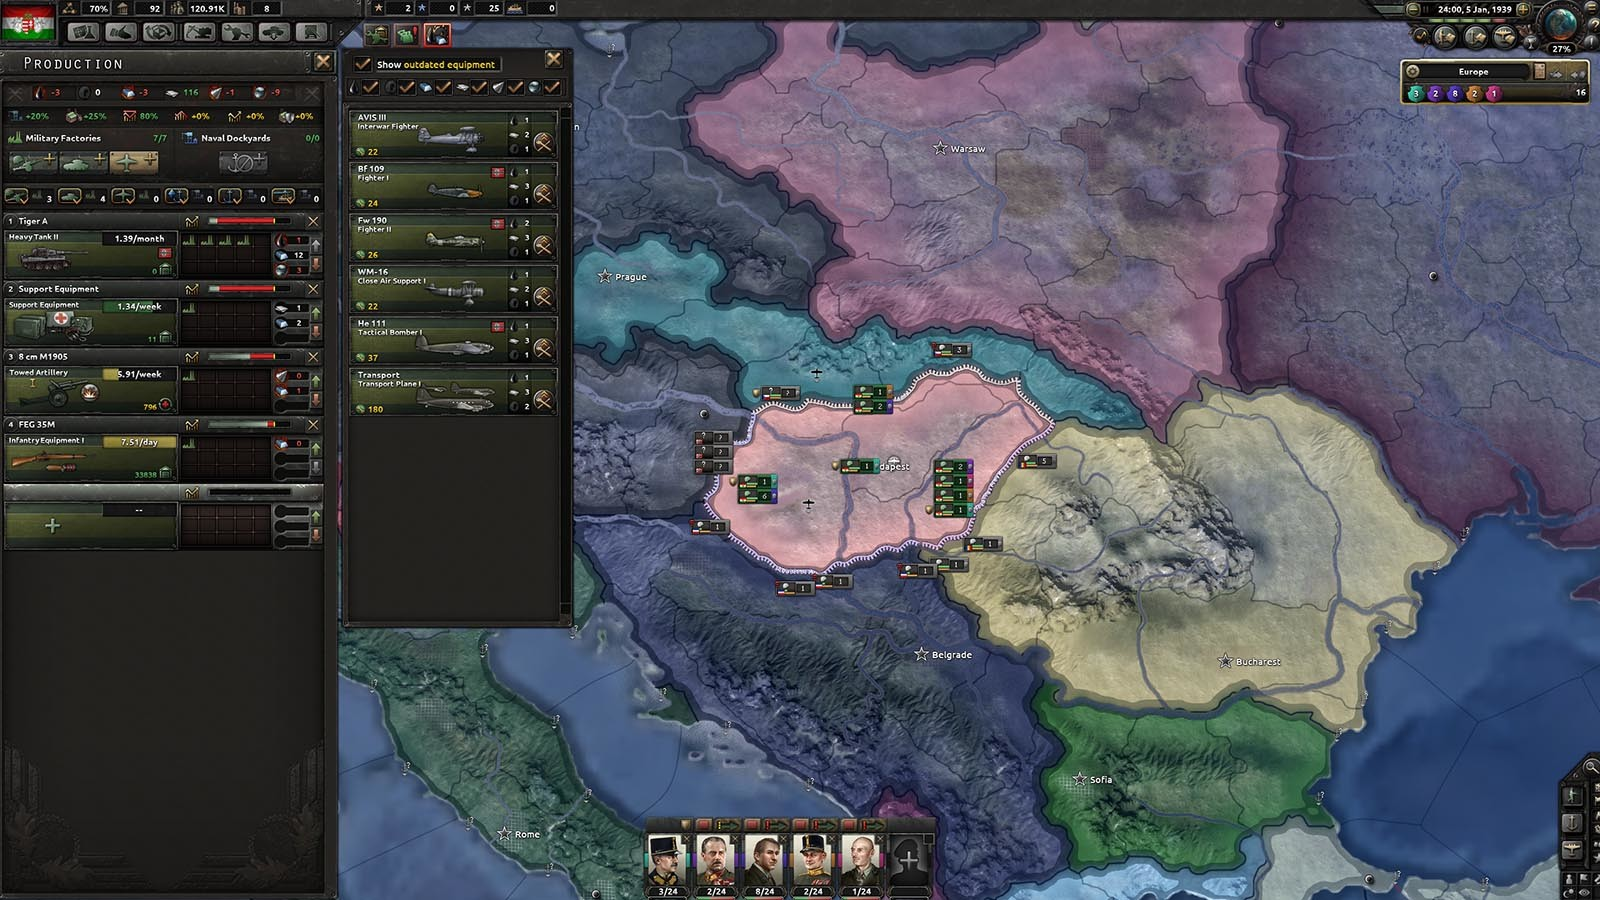 Hearts of Iron IV: Death or Dishonor [Steam CD Key] for PC, Mac and Linux -  Buy now